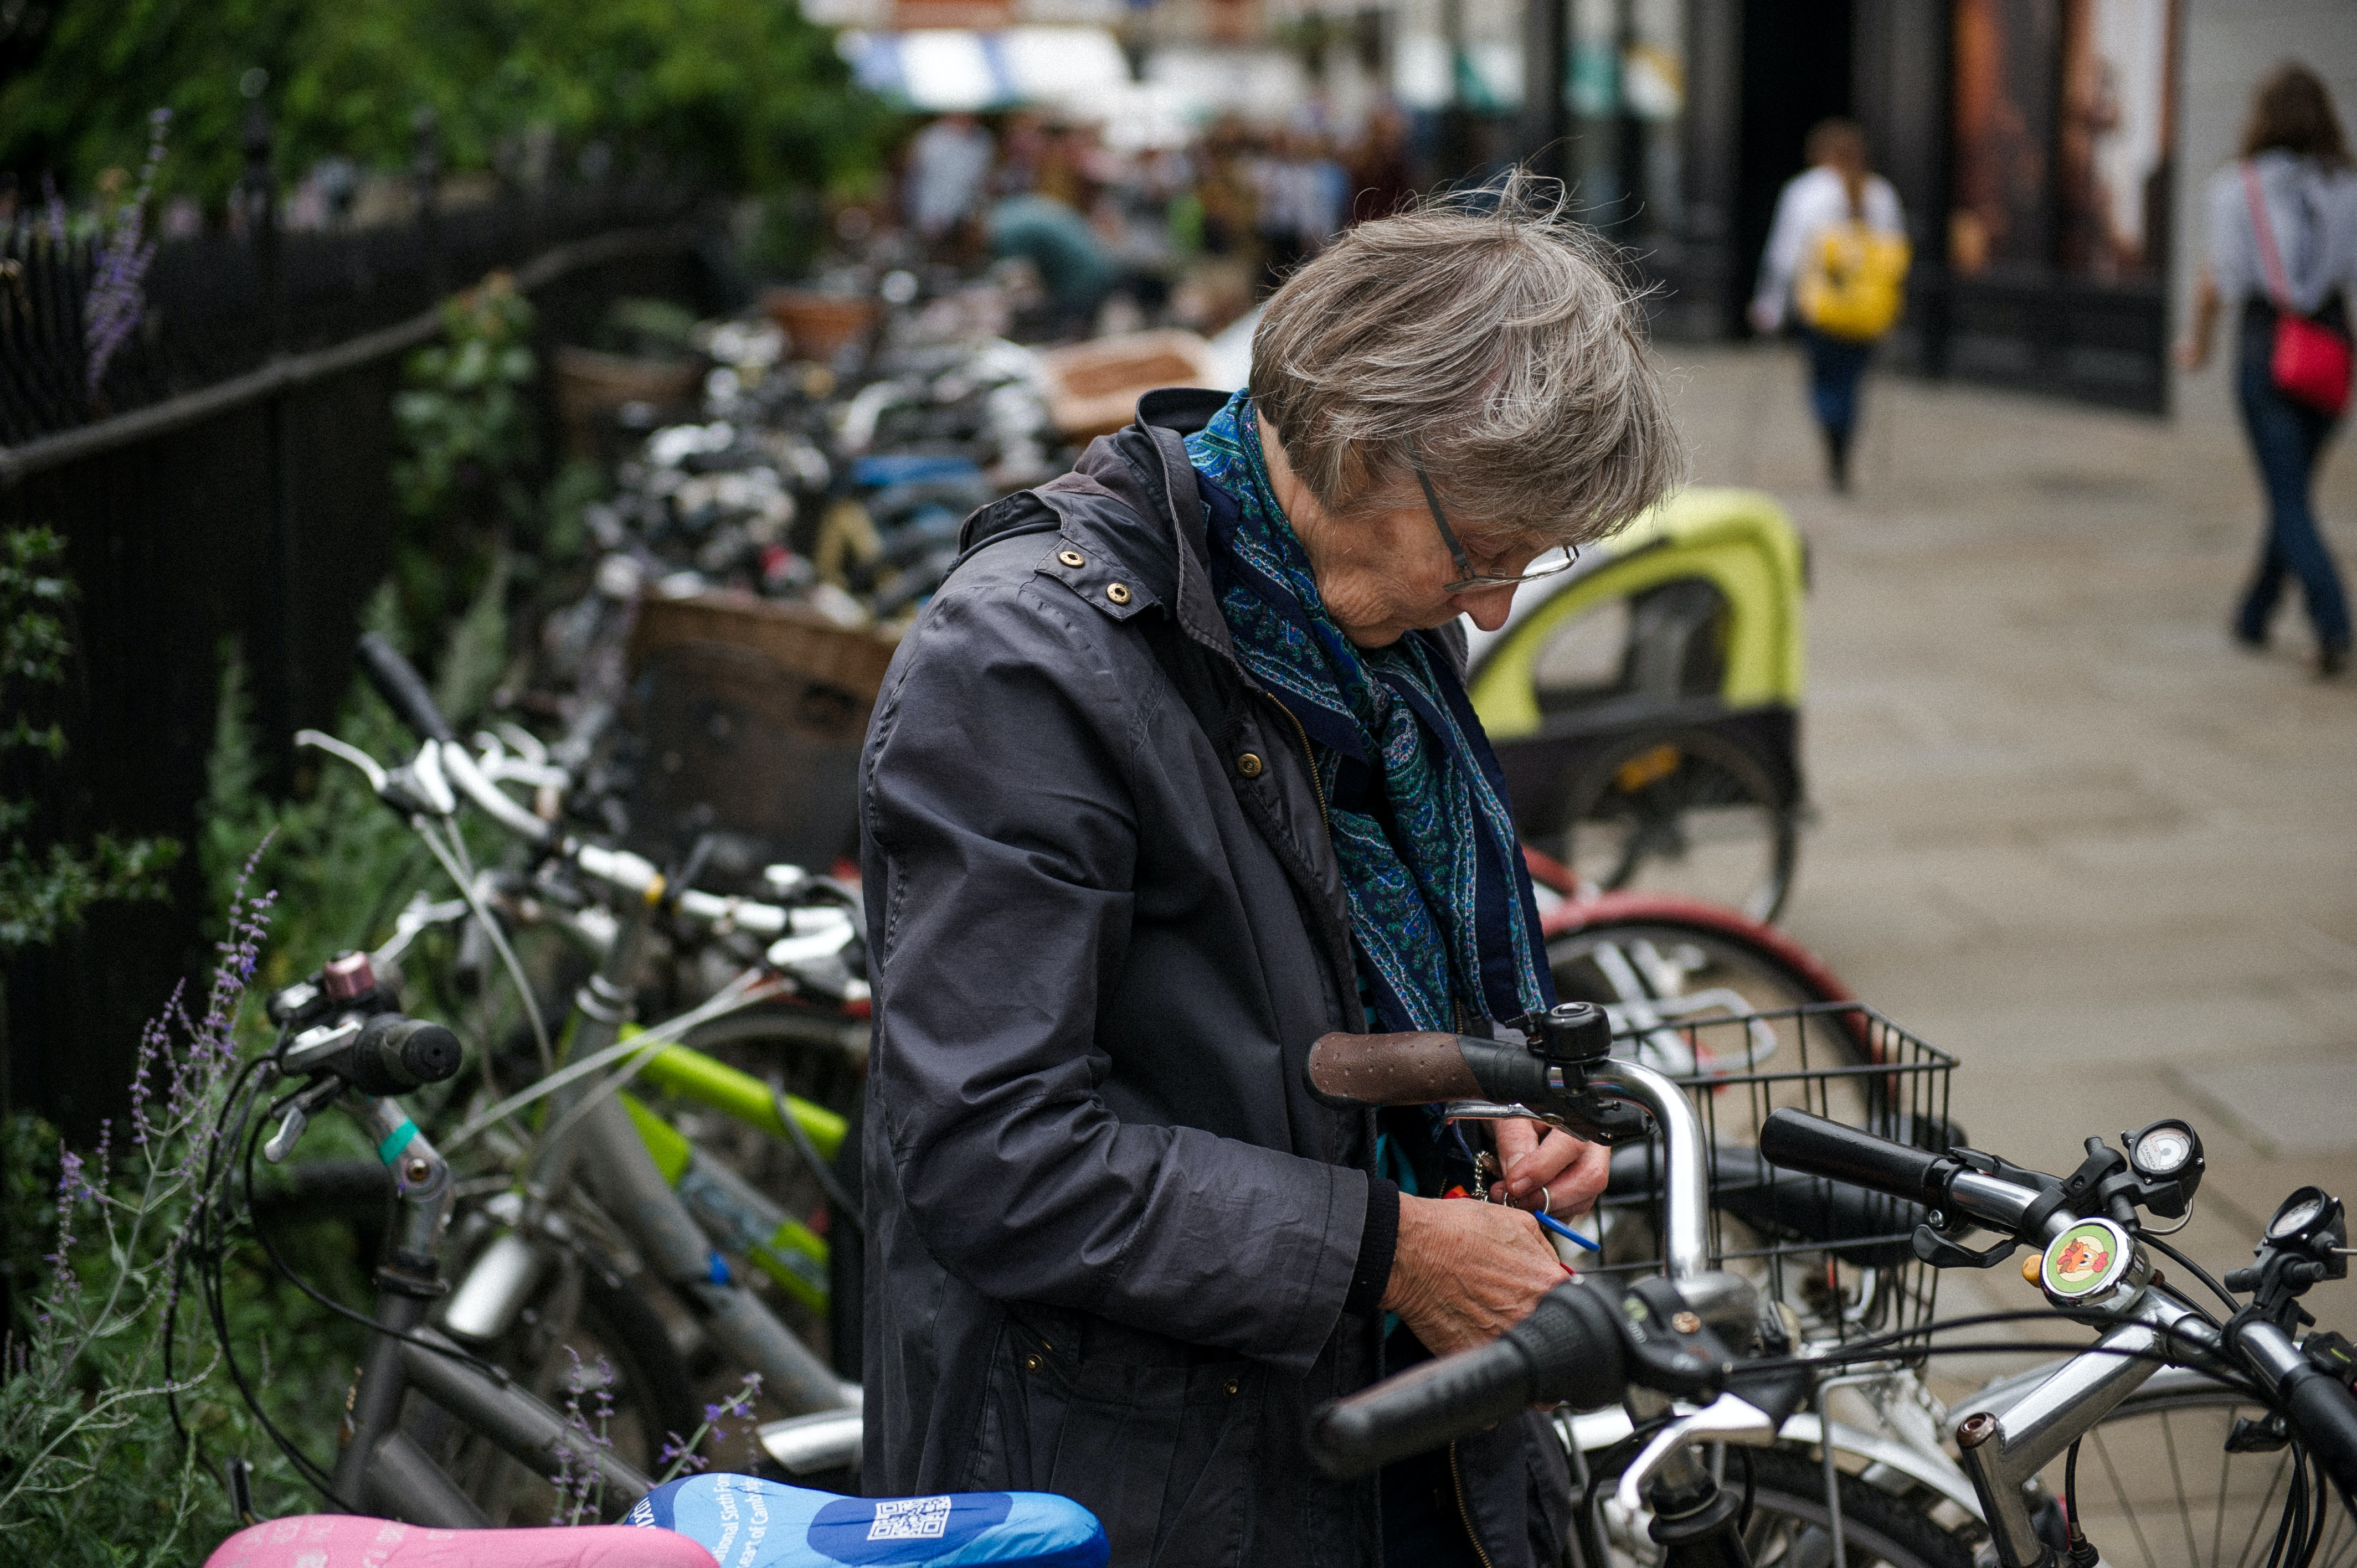 shallow focus photography woman in black zip-up jacket beside gray bicycle near commercial buildings during daytime